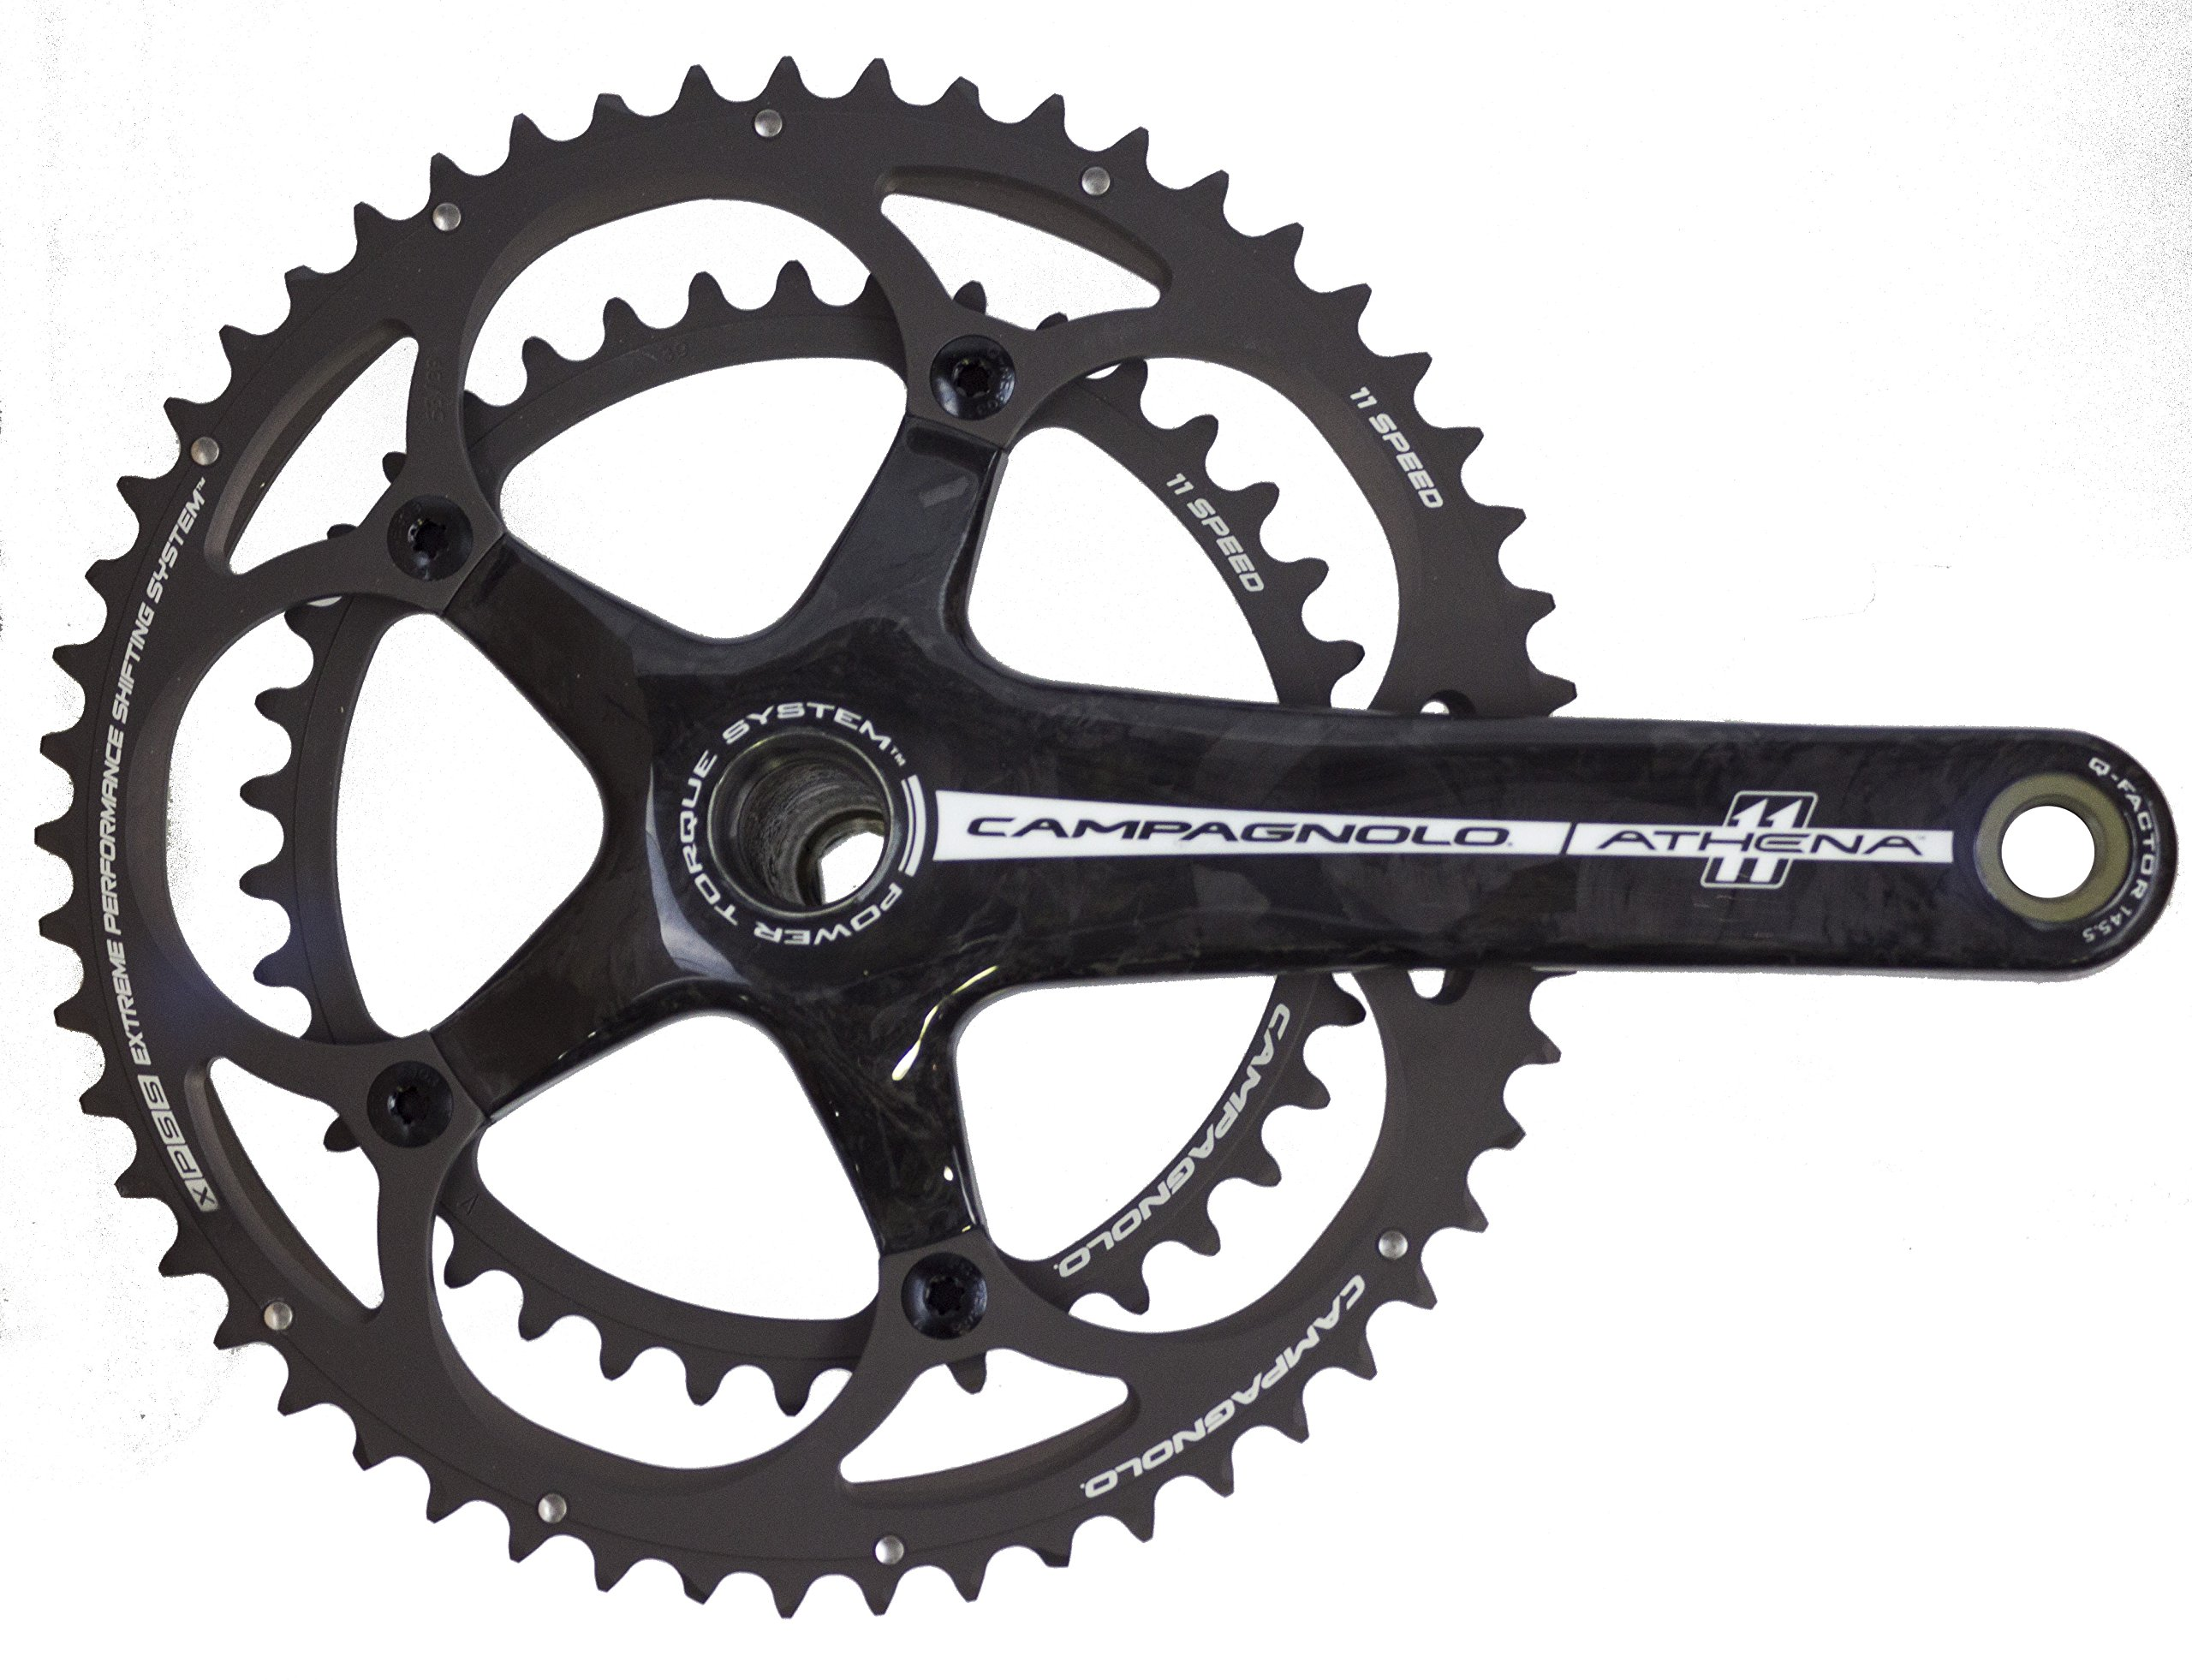 Campagnolo Athena Crankset 175mm 50-34 EVO; Bottom Bracket Not Included by Campagnolo